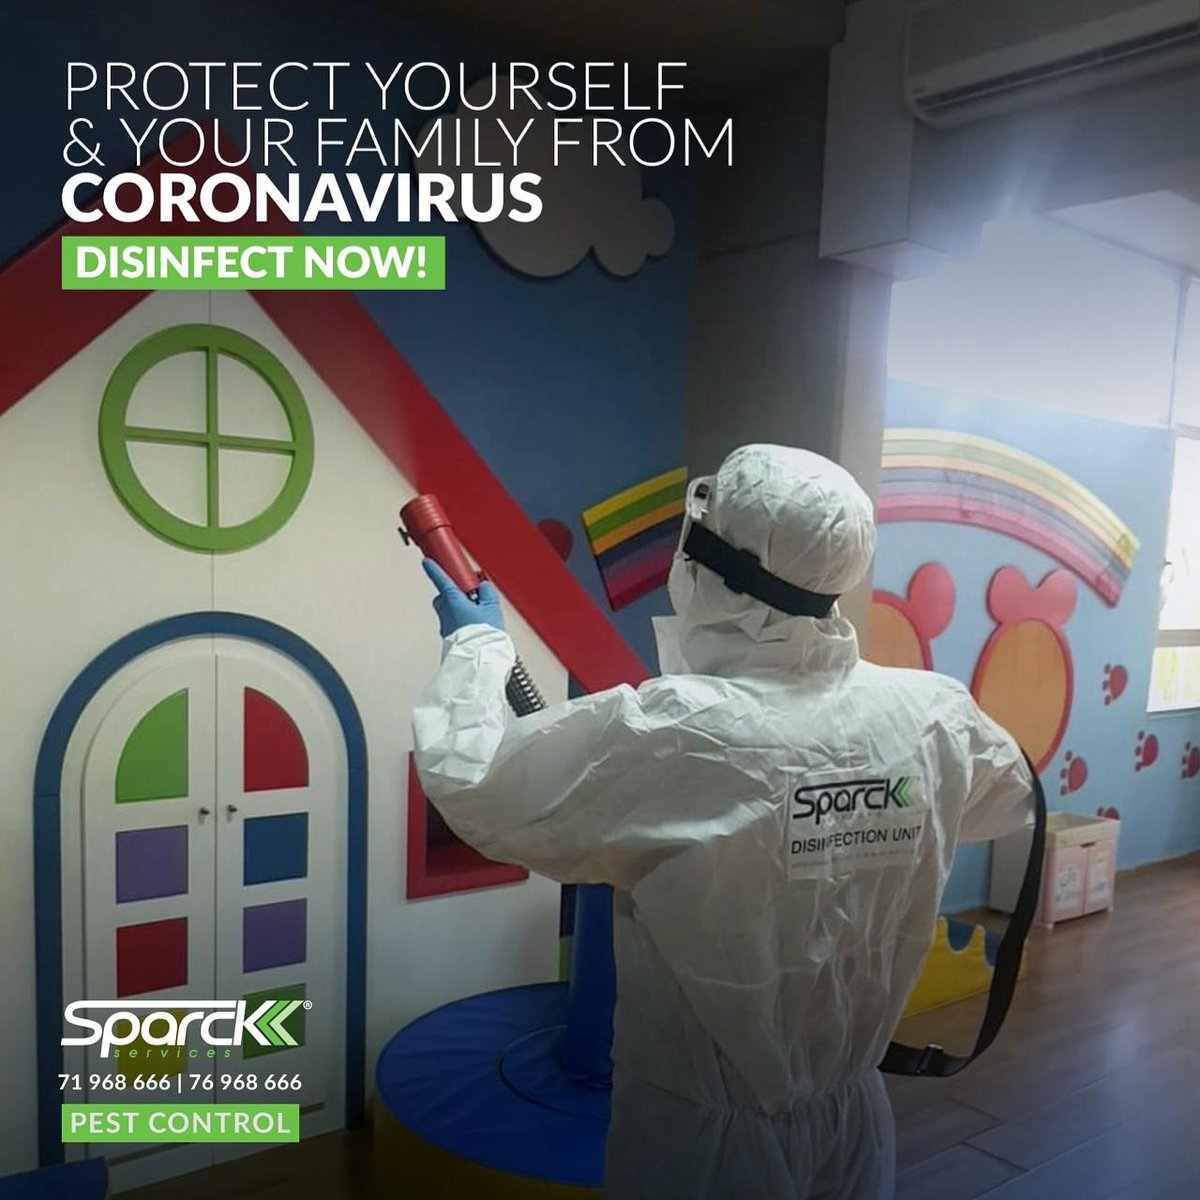 #H1N1 #coronavirus #Disinfection #family #sparck_services #schools #kindergarten #hospital #healthy #baby #photo #gym #homes #offices #garderie information visit:  #like4like #follow #me on  To #get your #offers #contact 76968666